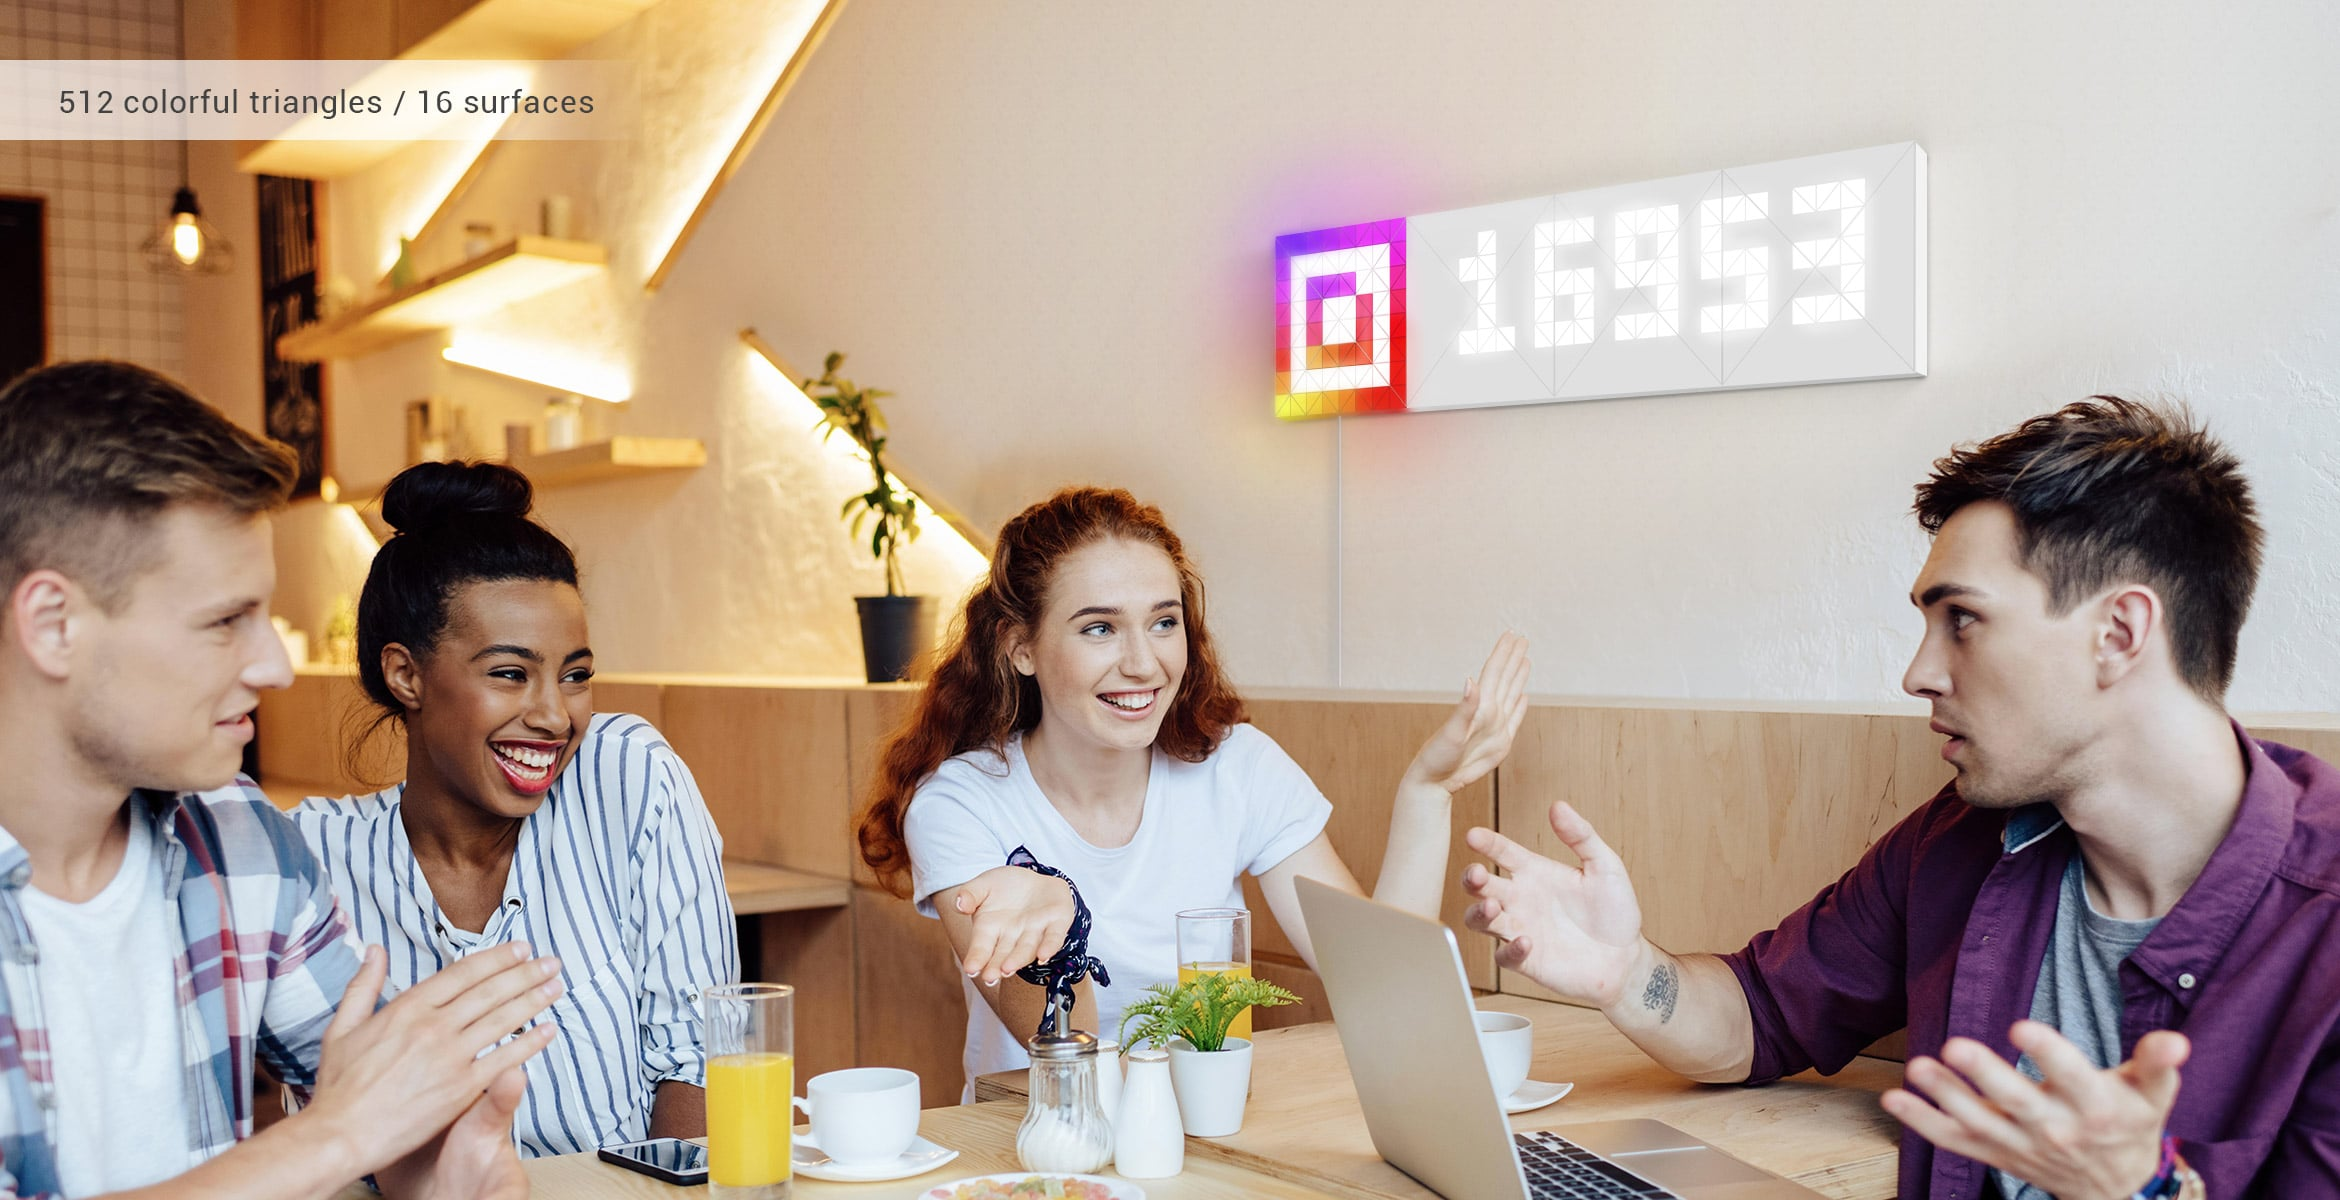 Infoscreen, assembled from 16 smart light surfaces, complements the cafe's interior and displays follower count for Instagram